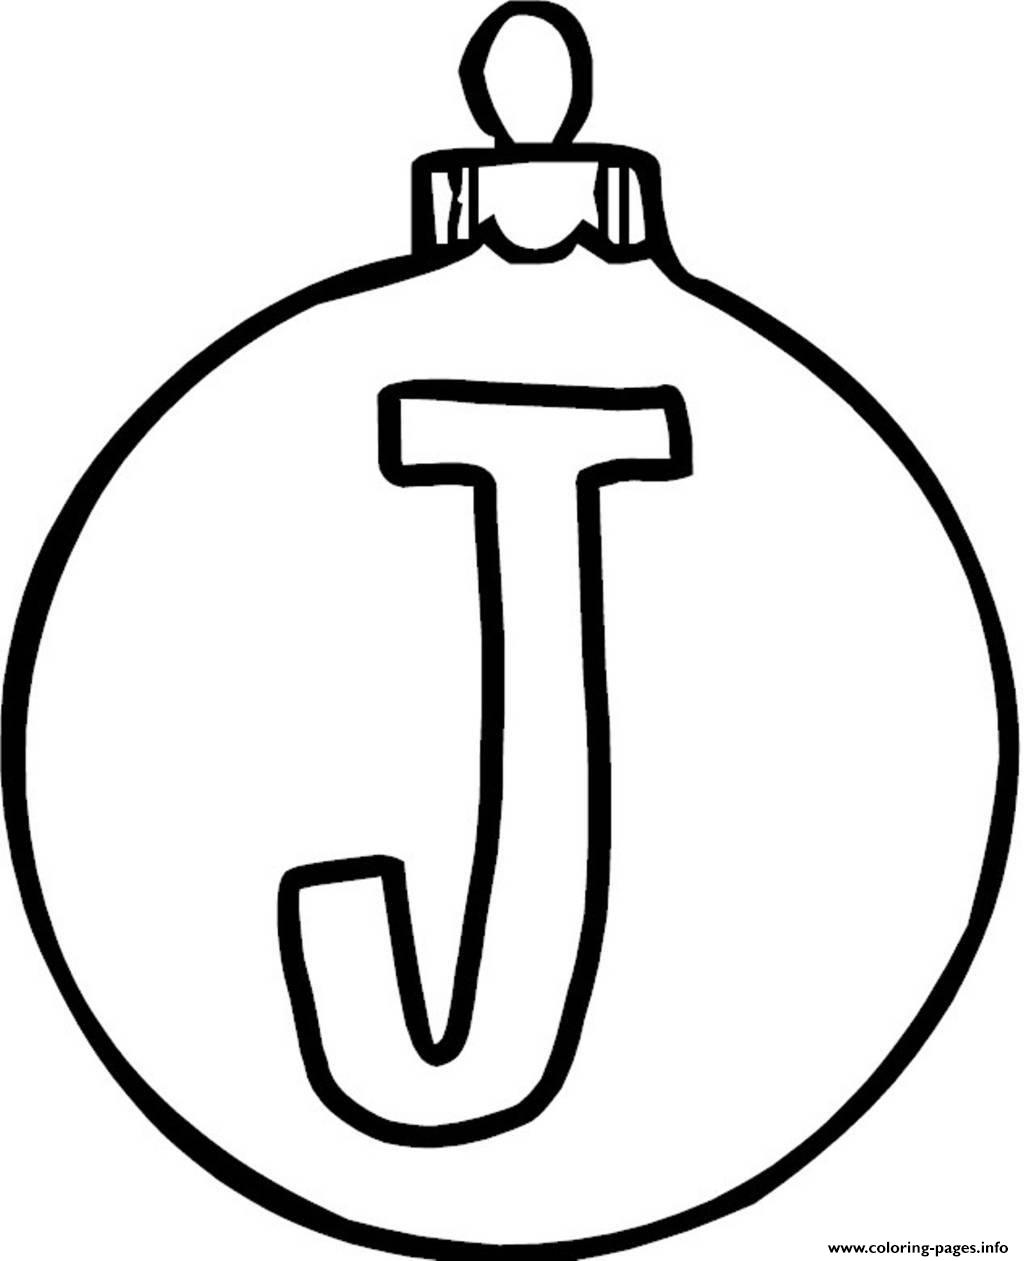 - Ornament J Alphabet 1c16 Coloring Pages Printable